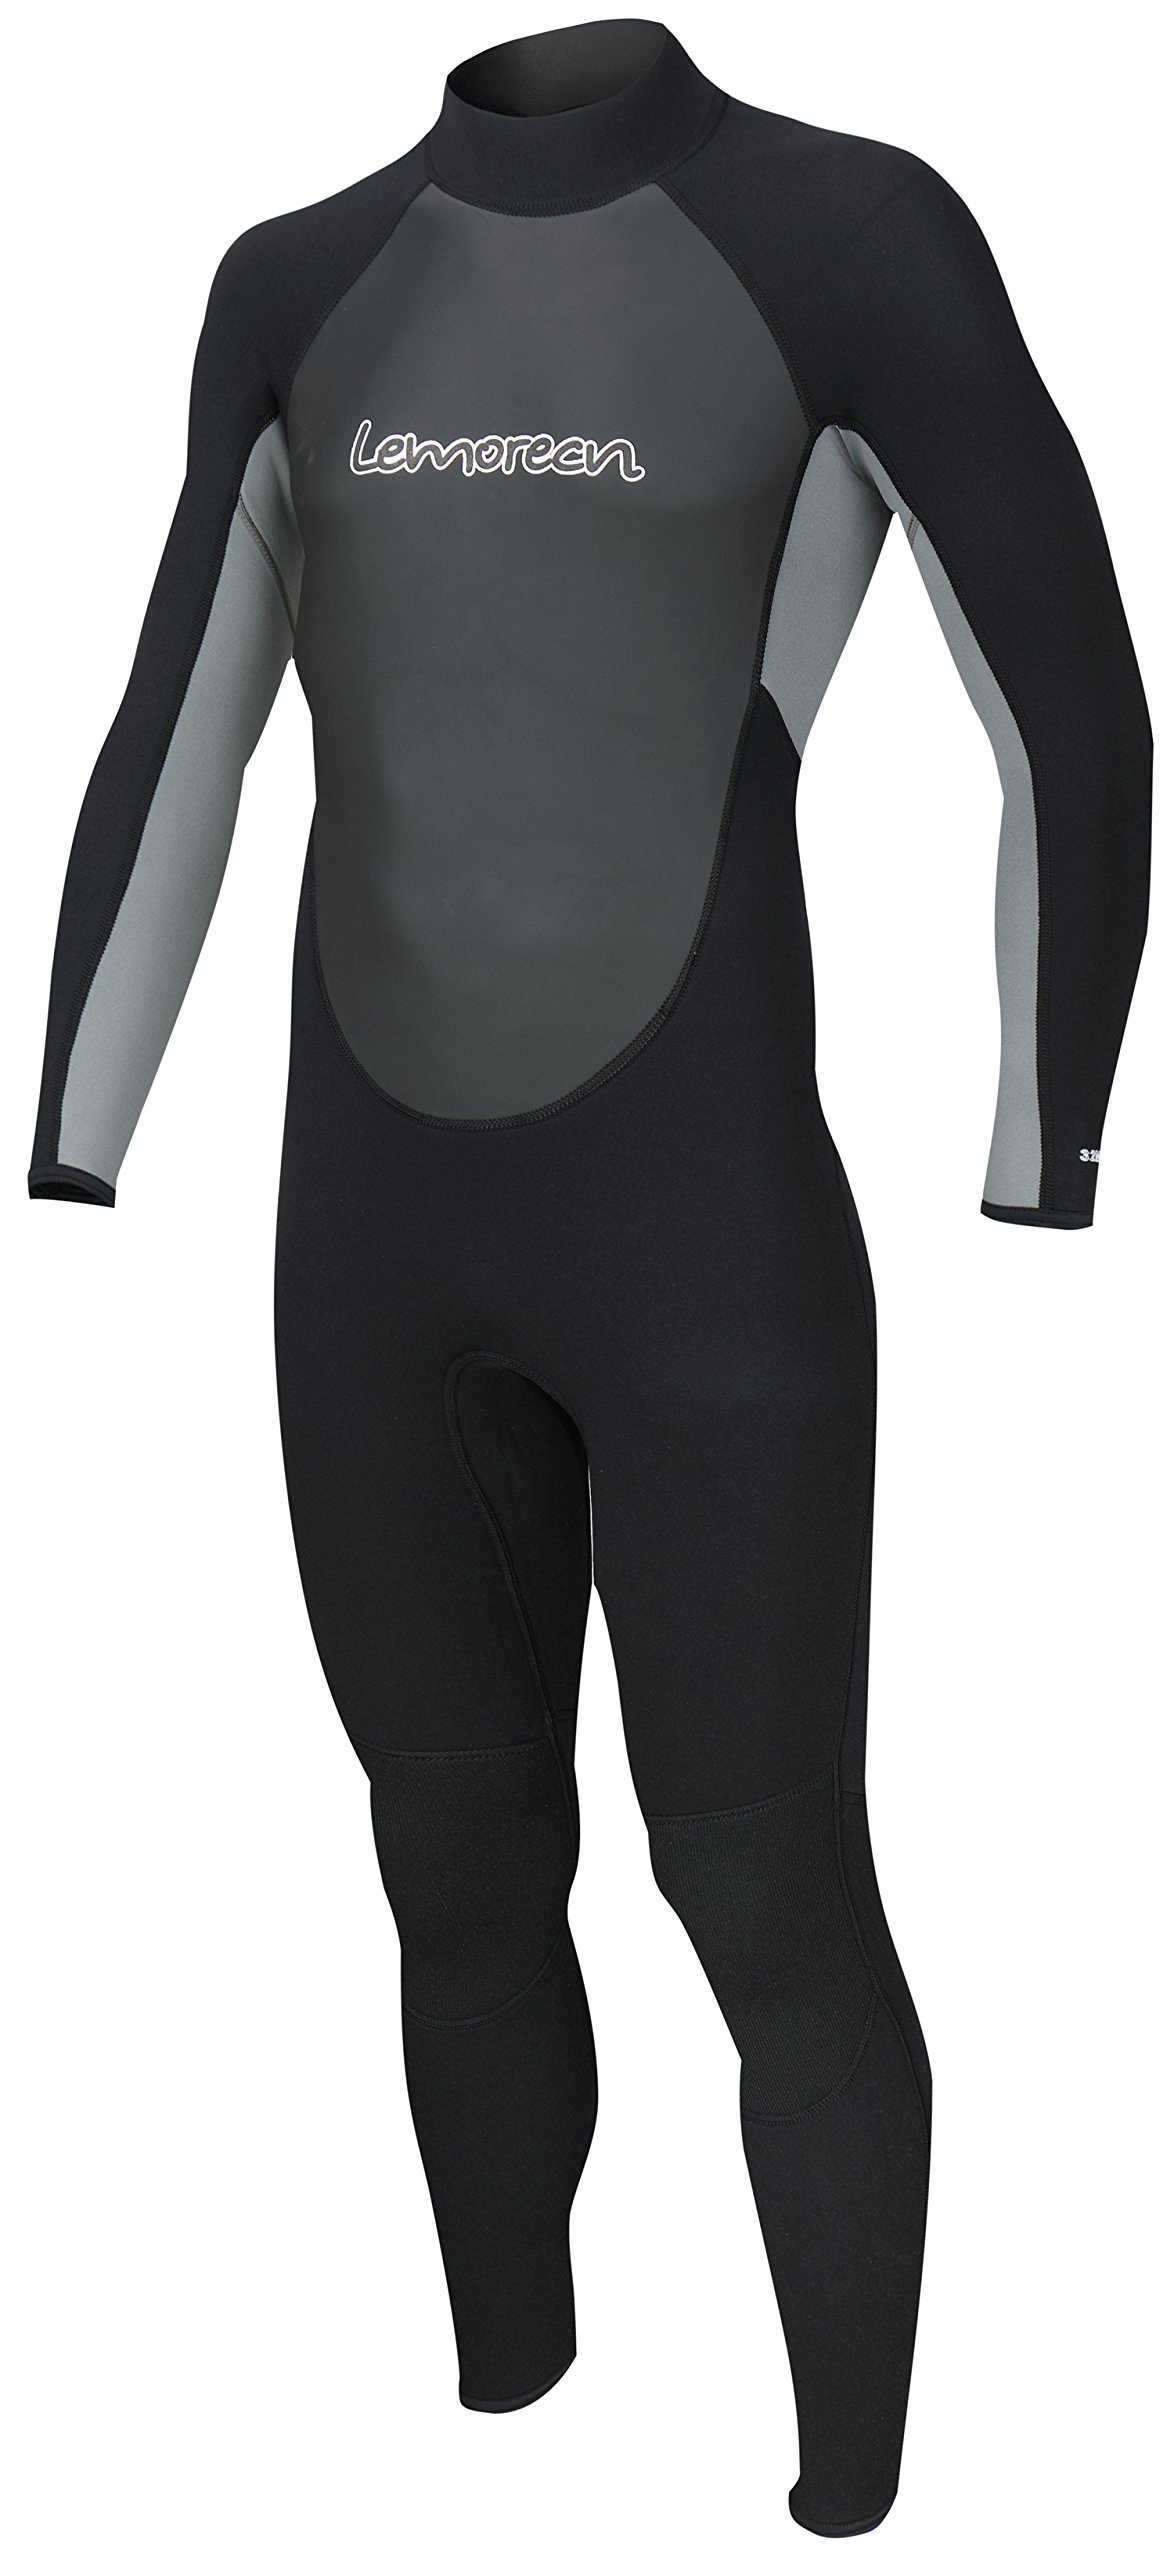 Lemorecn Wetsuits Mens Neoprene 3/2mm Full Suit(3032blackgrey-S)